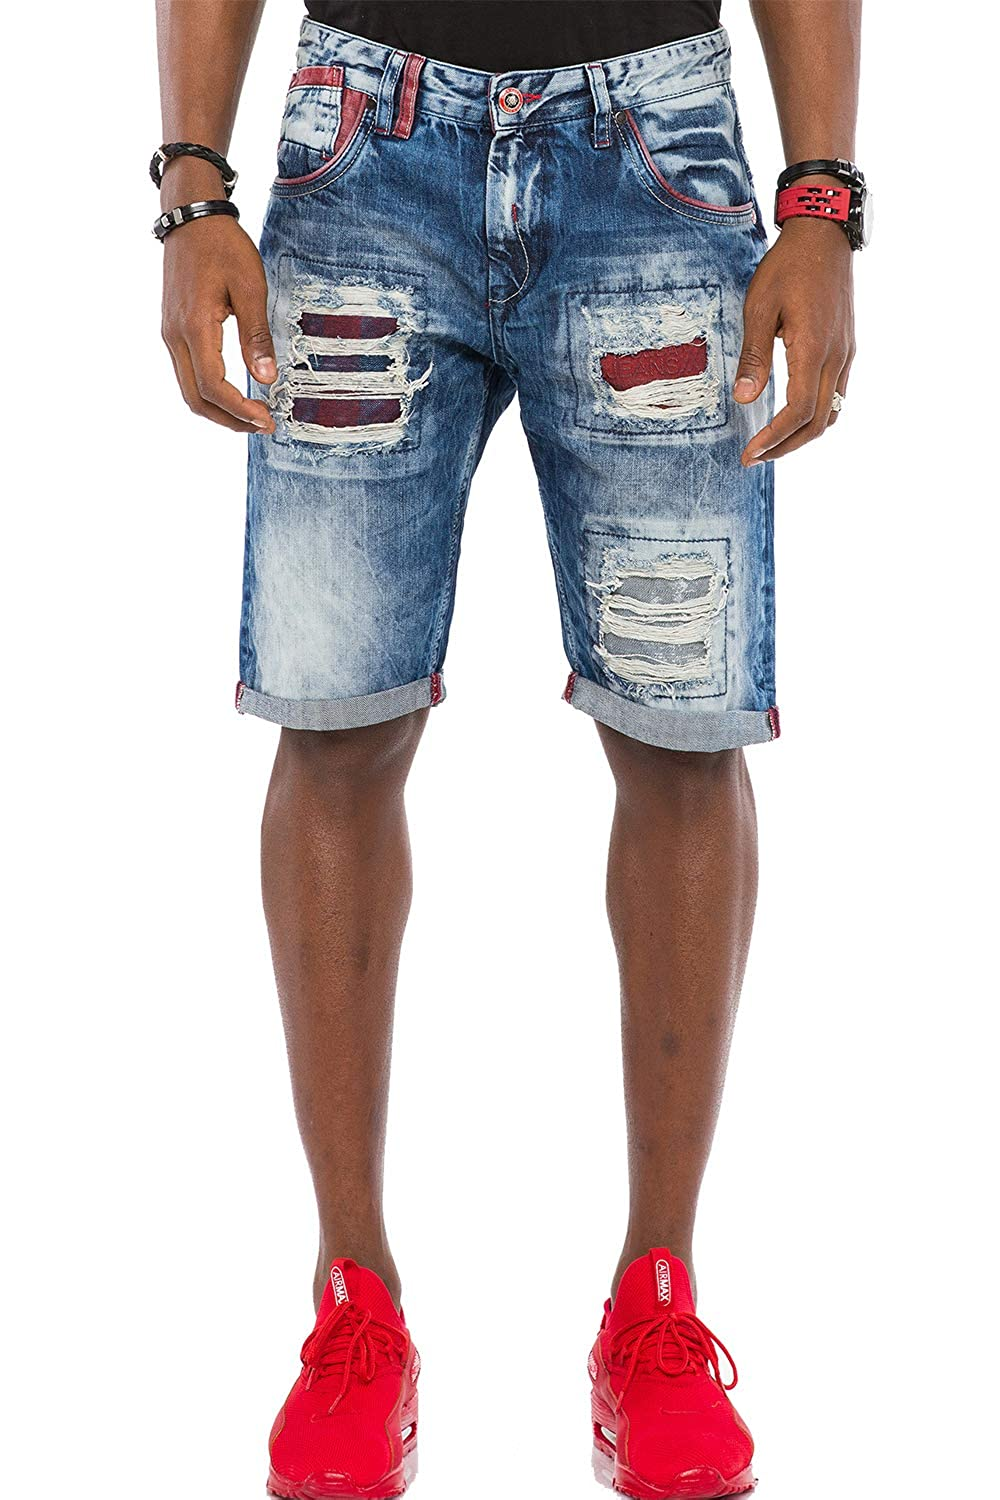 Cipo & Baxx Herren Jeans Shorts dirty washed